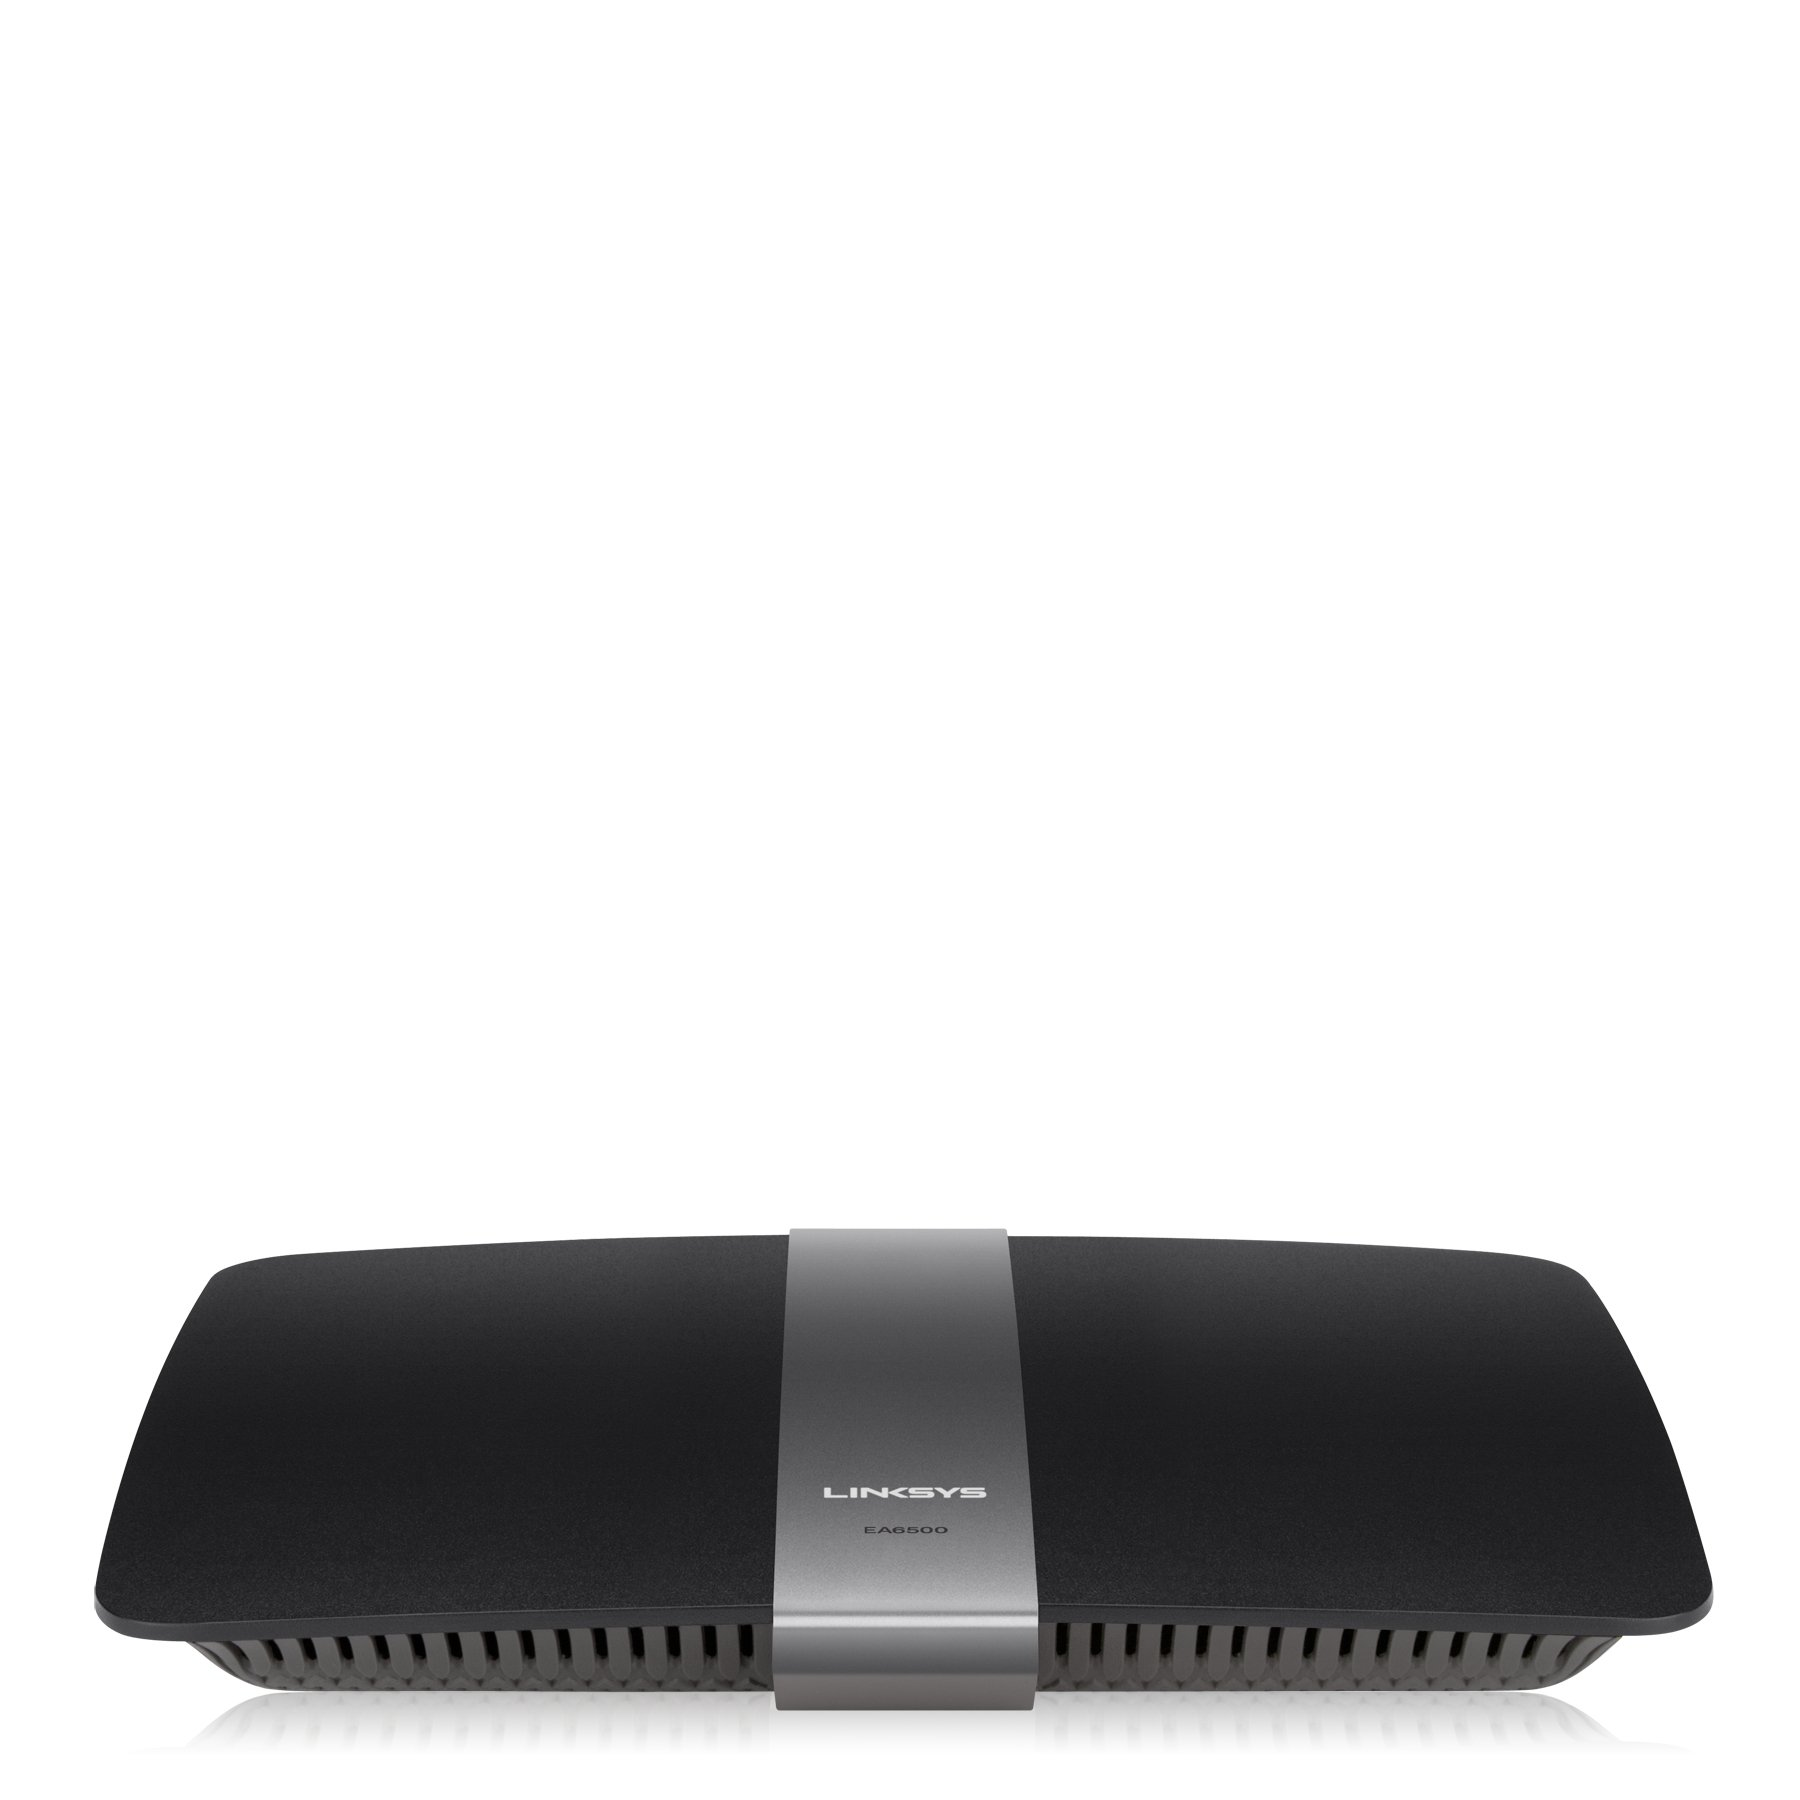 Linksys EA6500 Smart Wi-Fi Dual-Band AC Router with Gigabit and 2x USB by Linksys